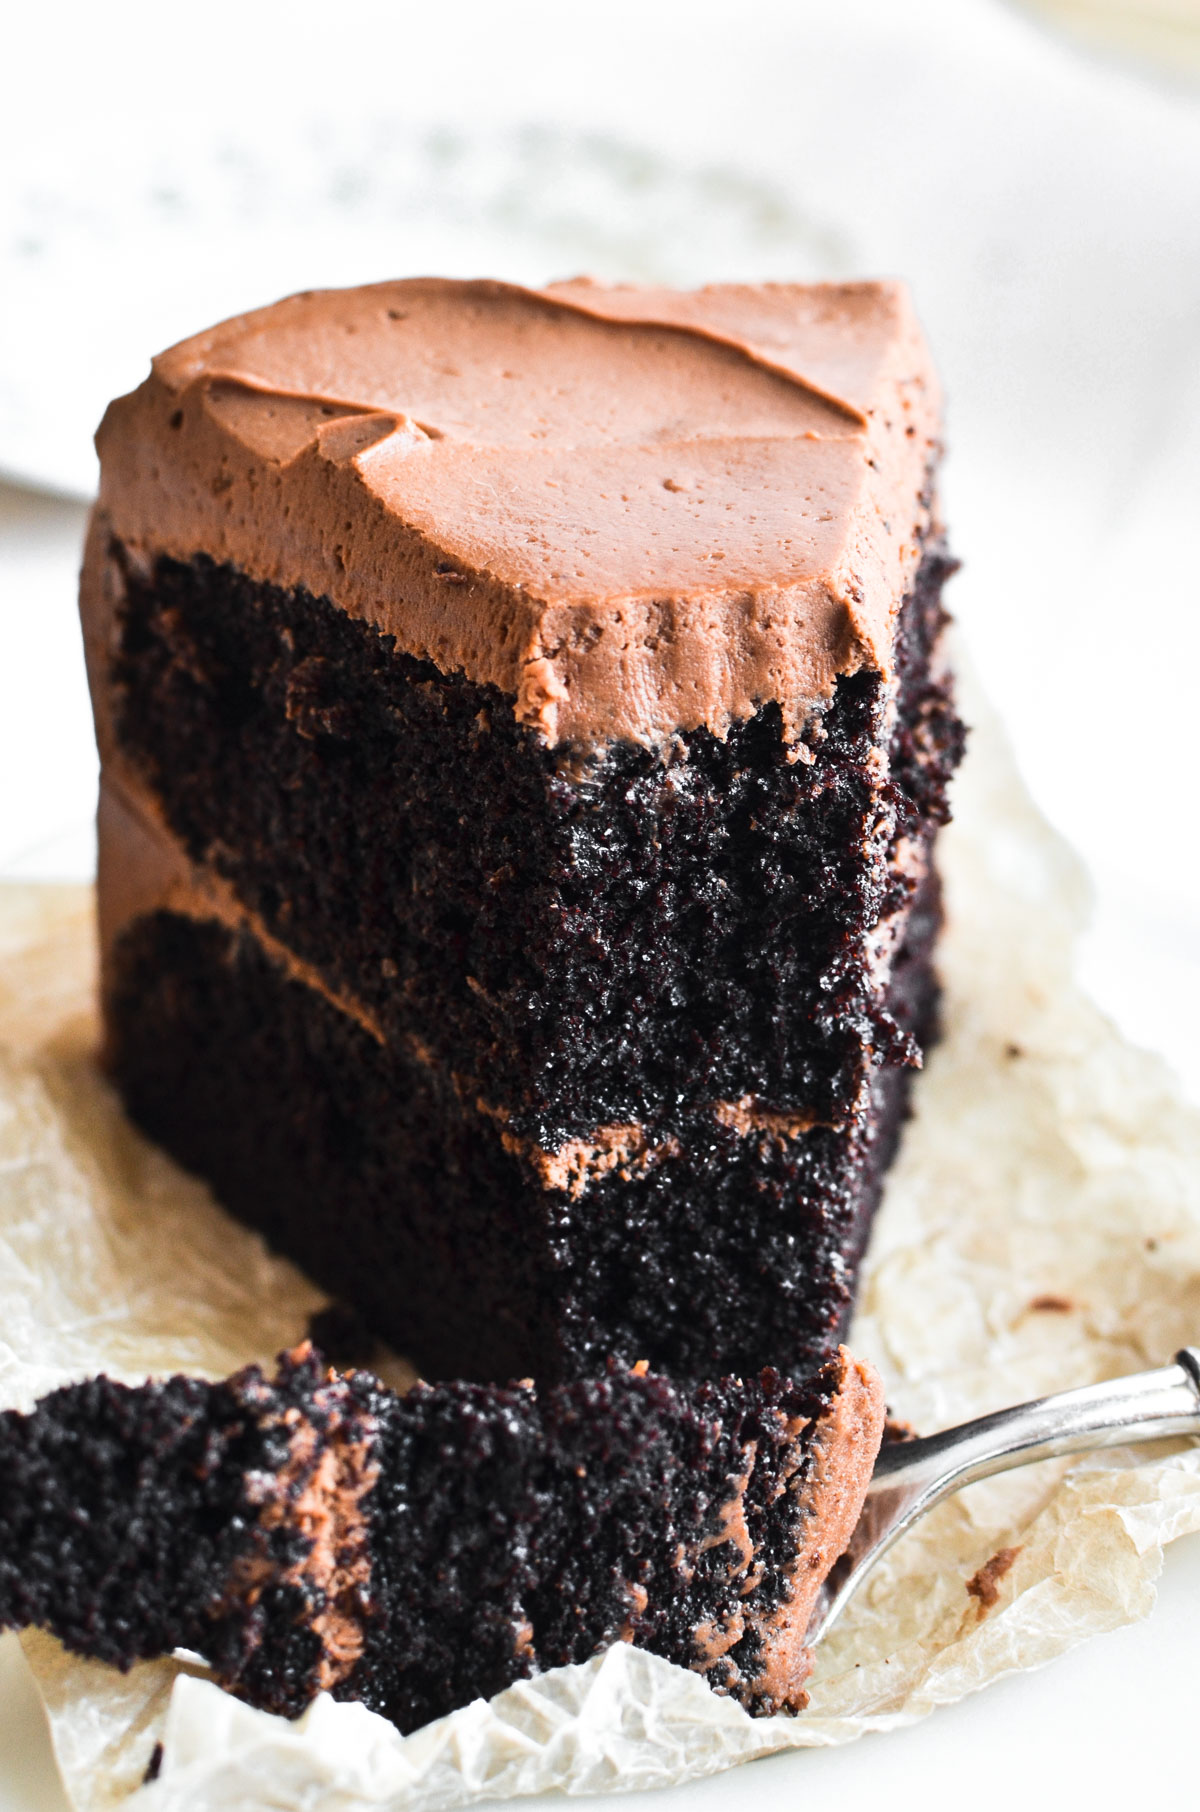 A slice of Ina Garten's Chocolate Cake with fork